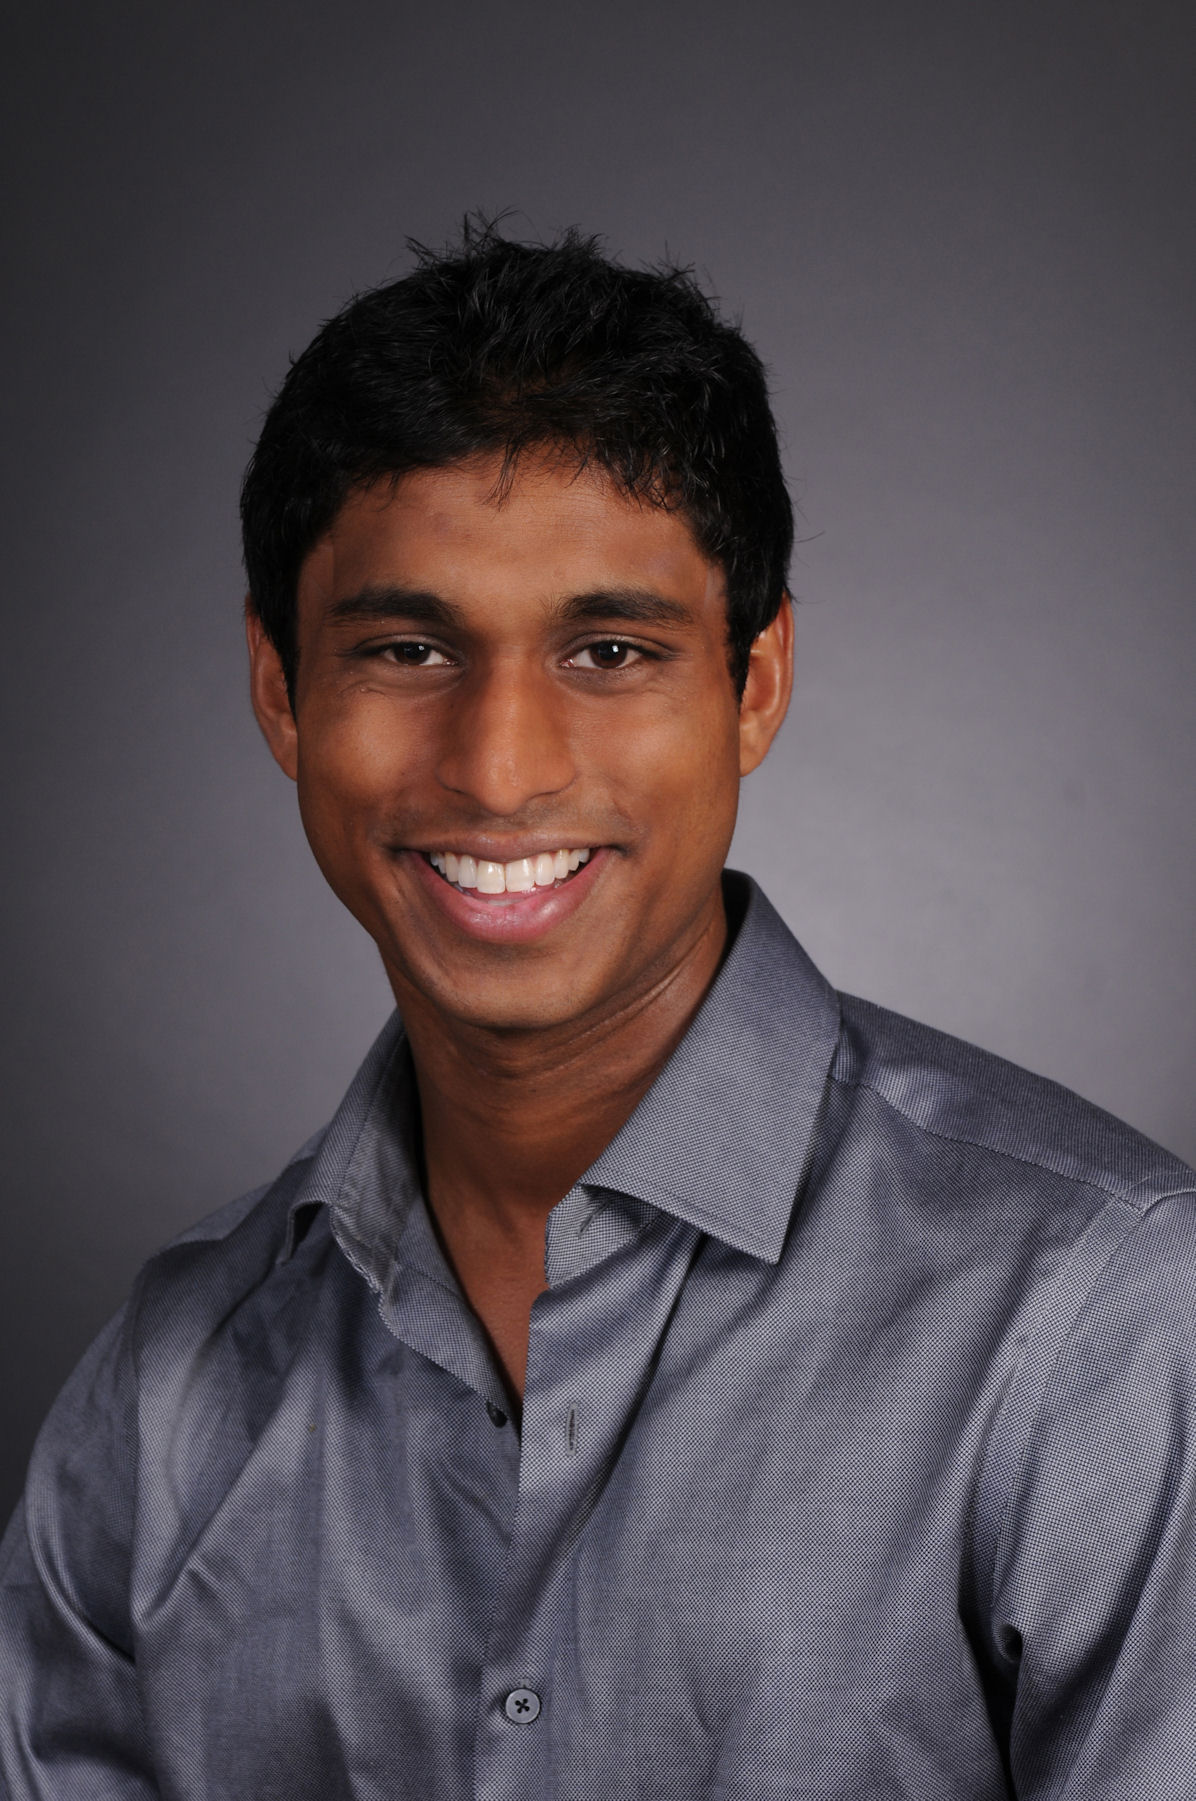 Young Entrepreneur of the Month: Ankur Jain